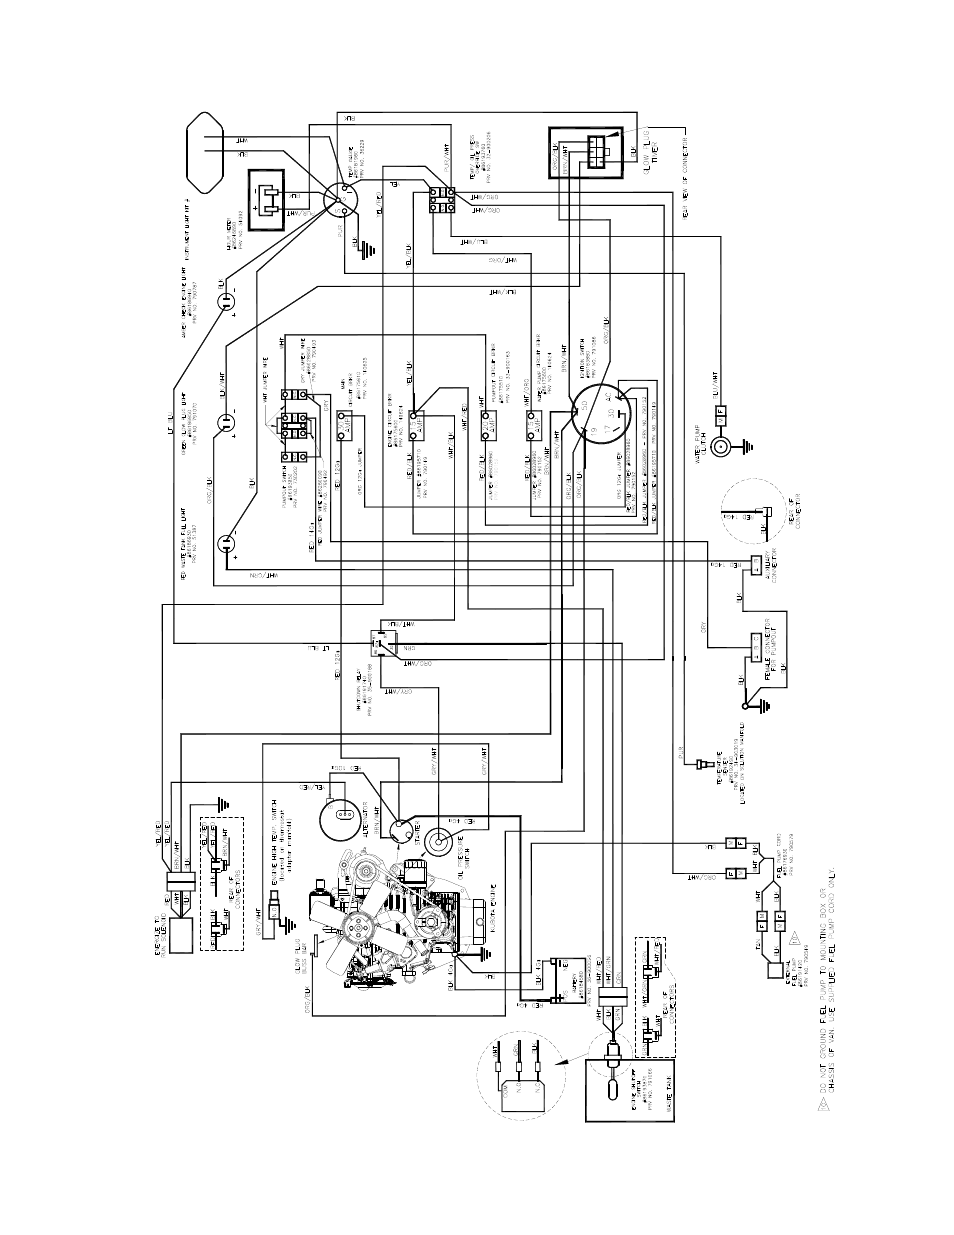 86037630 Pgs 8-84and 8-85  Wiring Diagram